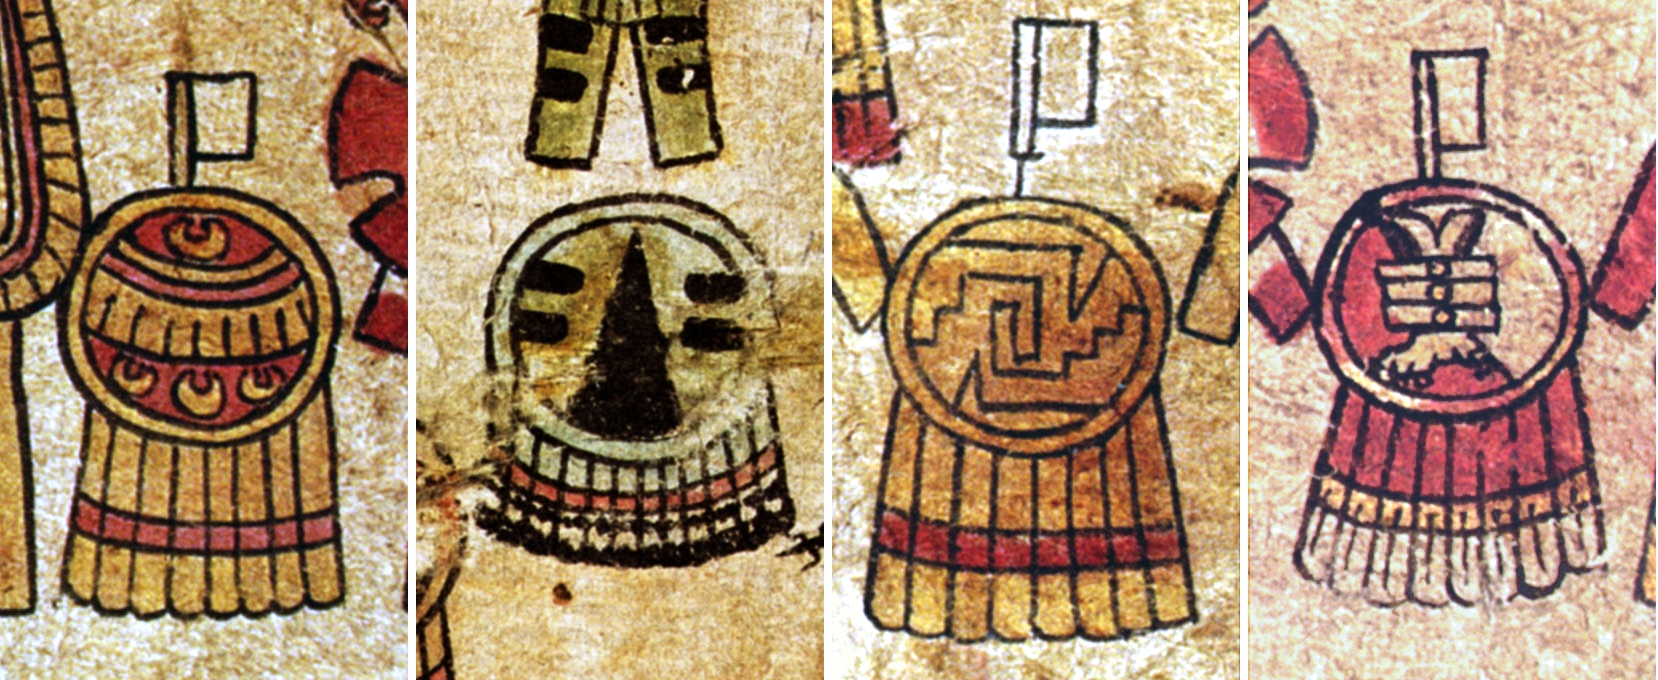 FIGURE 37. Styles of shields from folios 3r and 4r of the Matrícula de Tributos. From left to right, these are the Huaxtec Nose Ornament shield, the Huaxtec Hawk Scratch shield, the Twisted Gourd shield, and the Eagle's Foot shield.